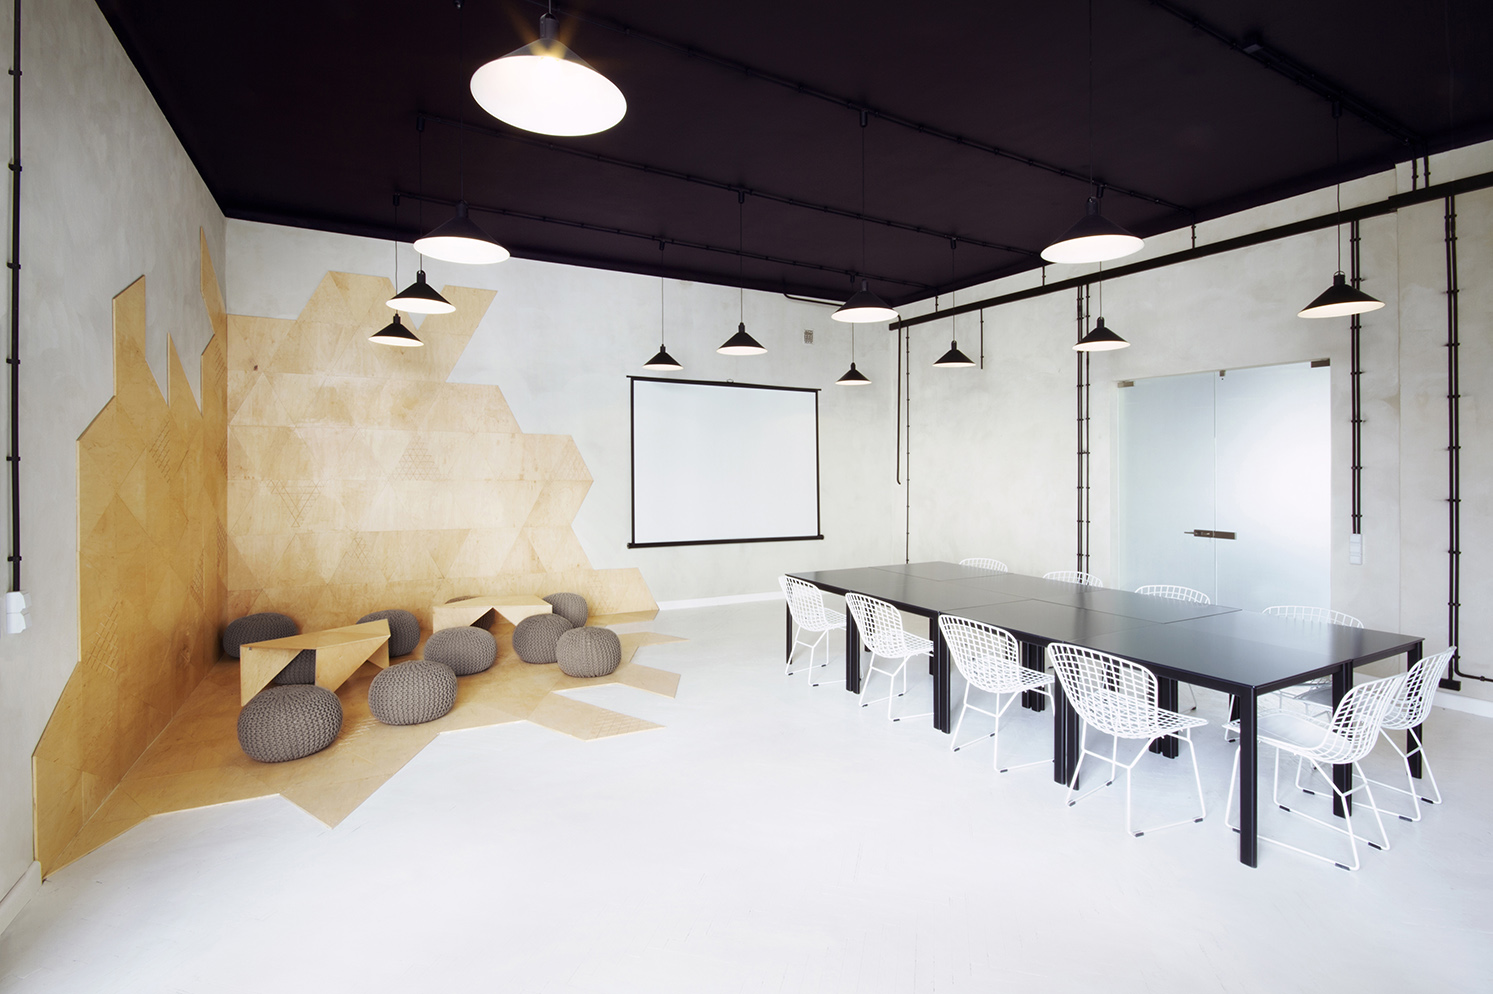 Informal meeting room interior design ideas for Meeting room interior design ideas